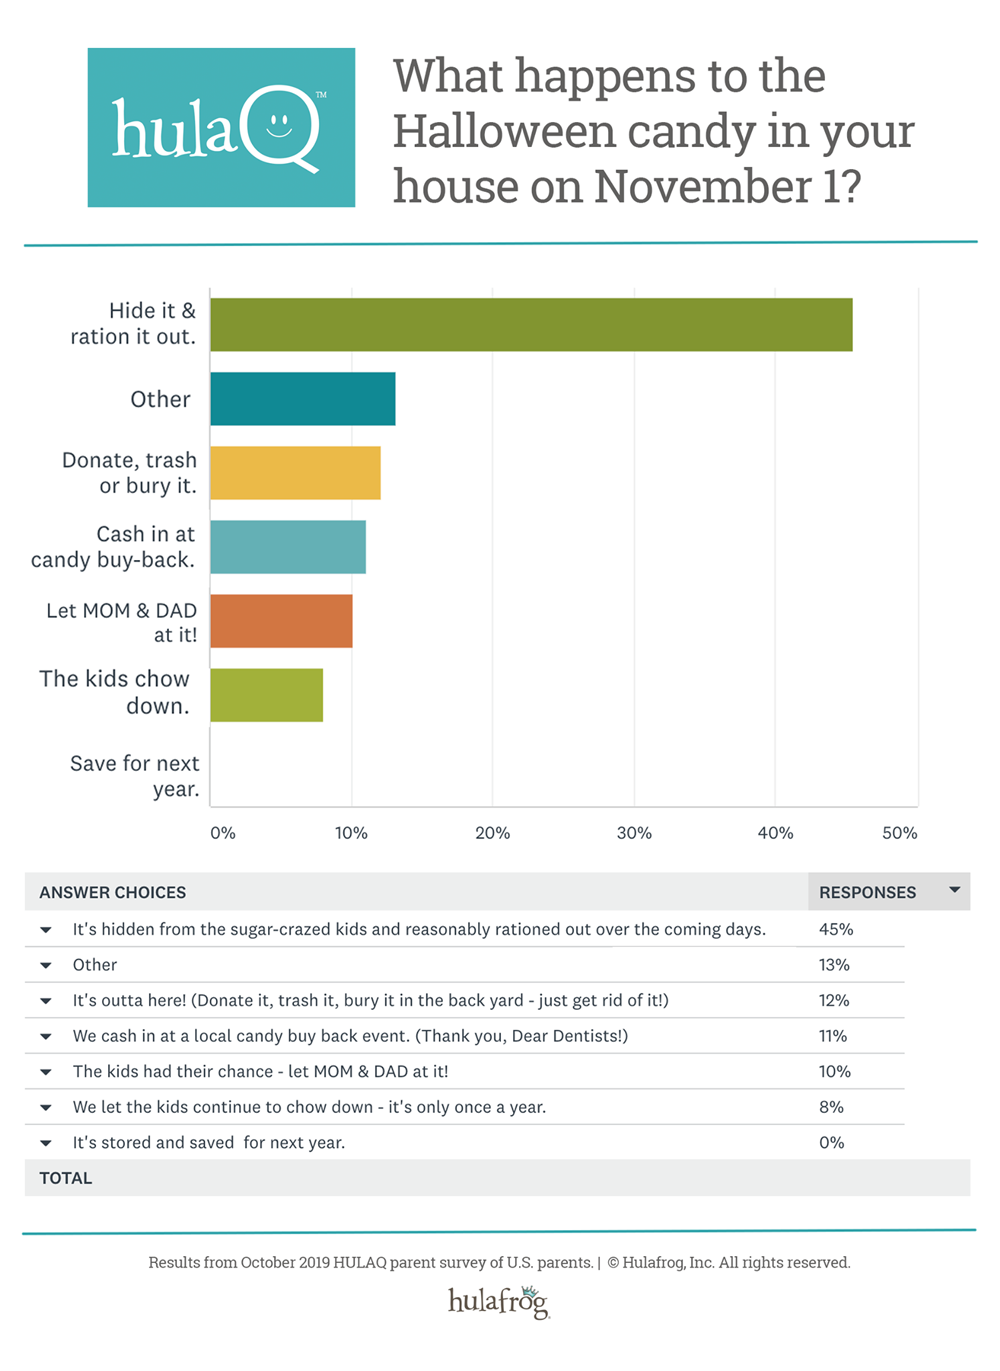 HulaQ Infographic October 2019 - What happens to your Halloween Candy on November 1